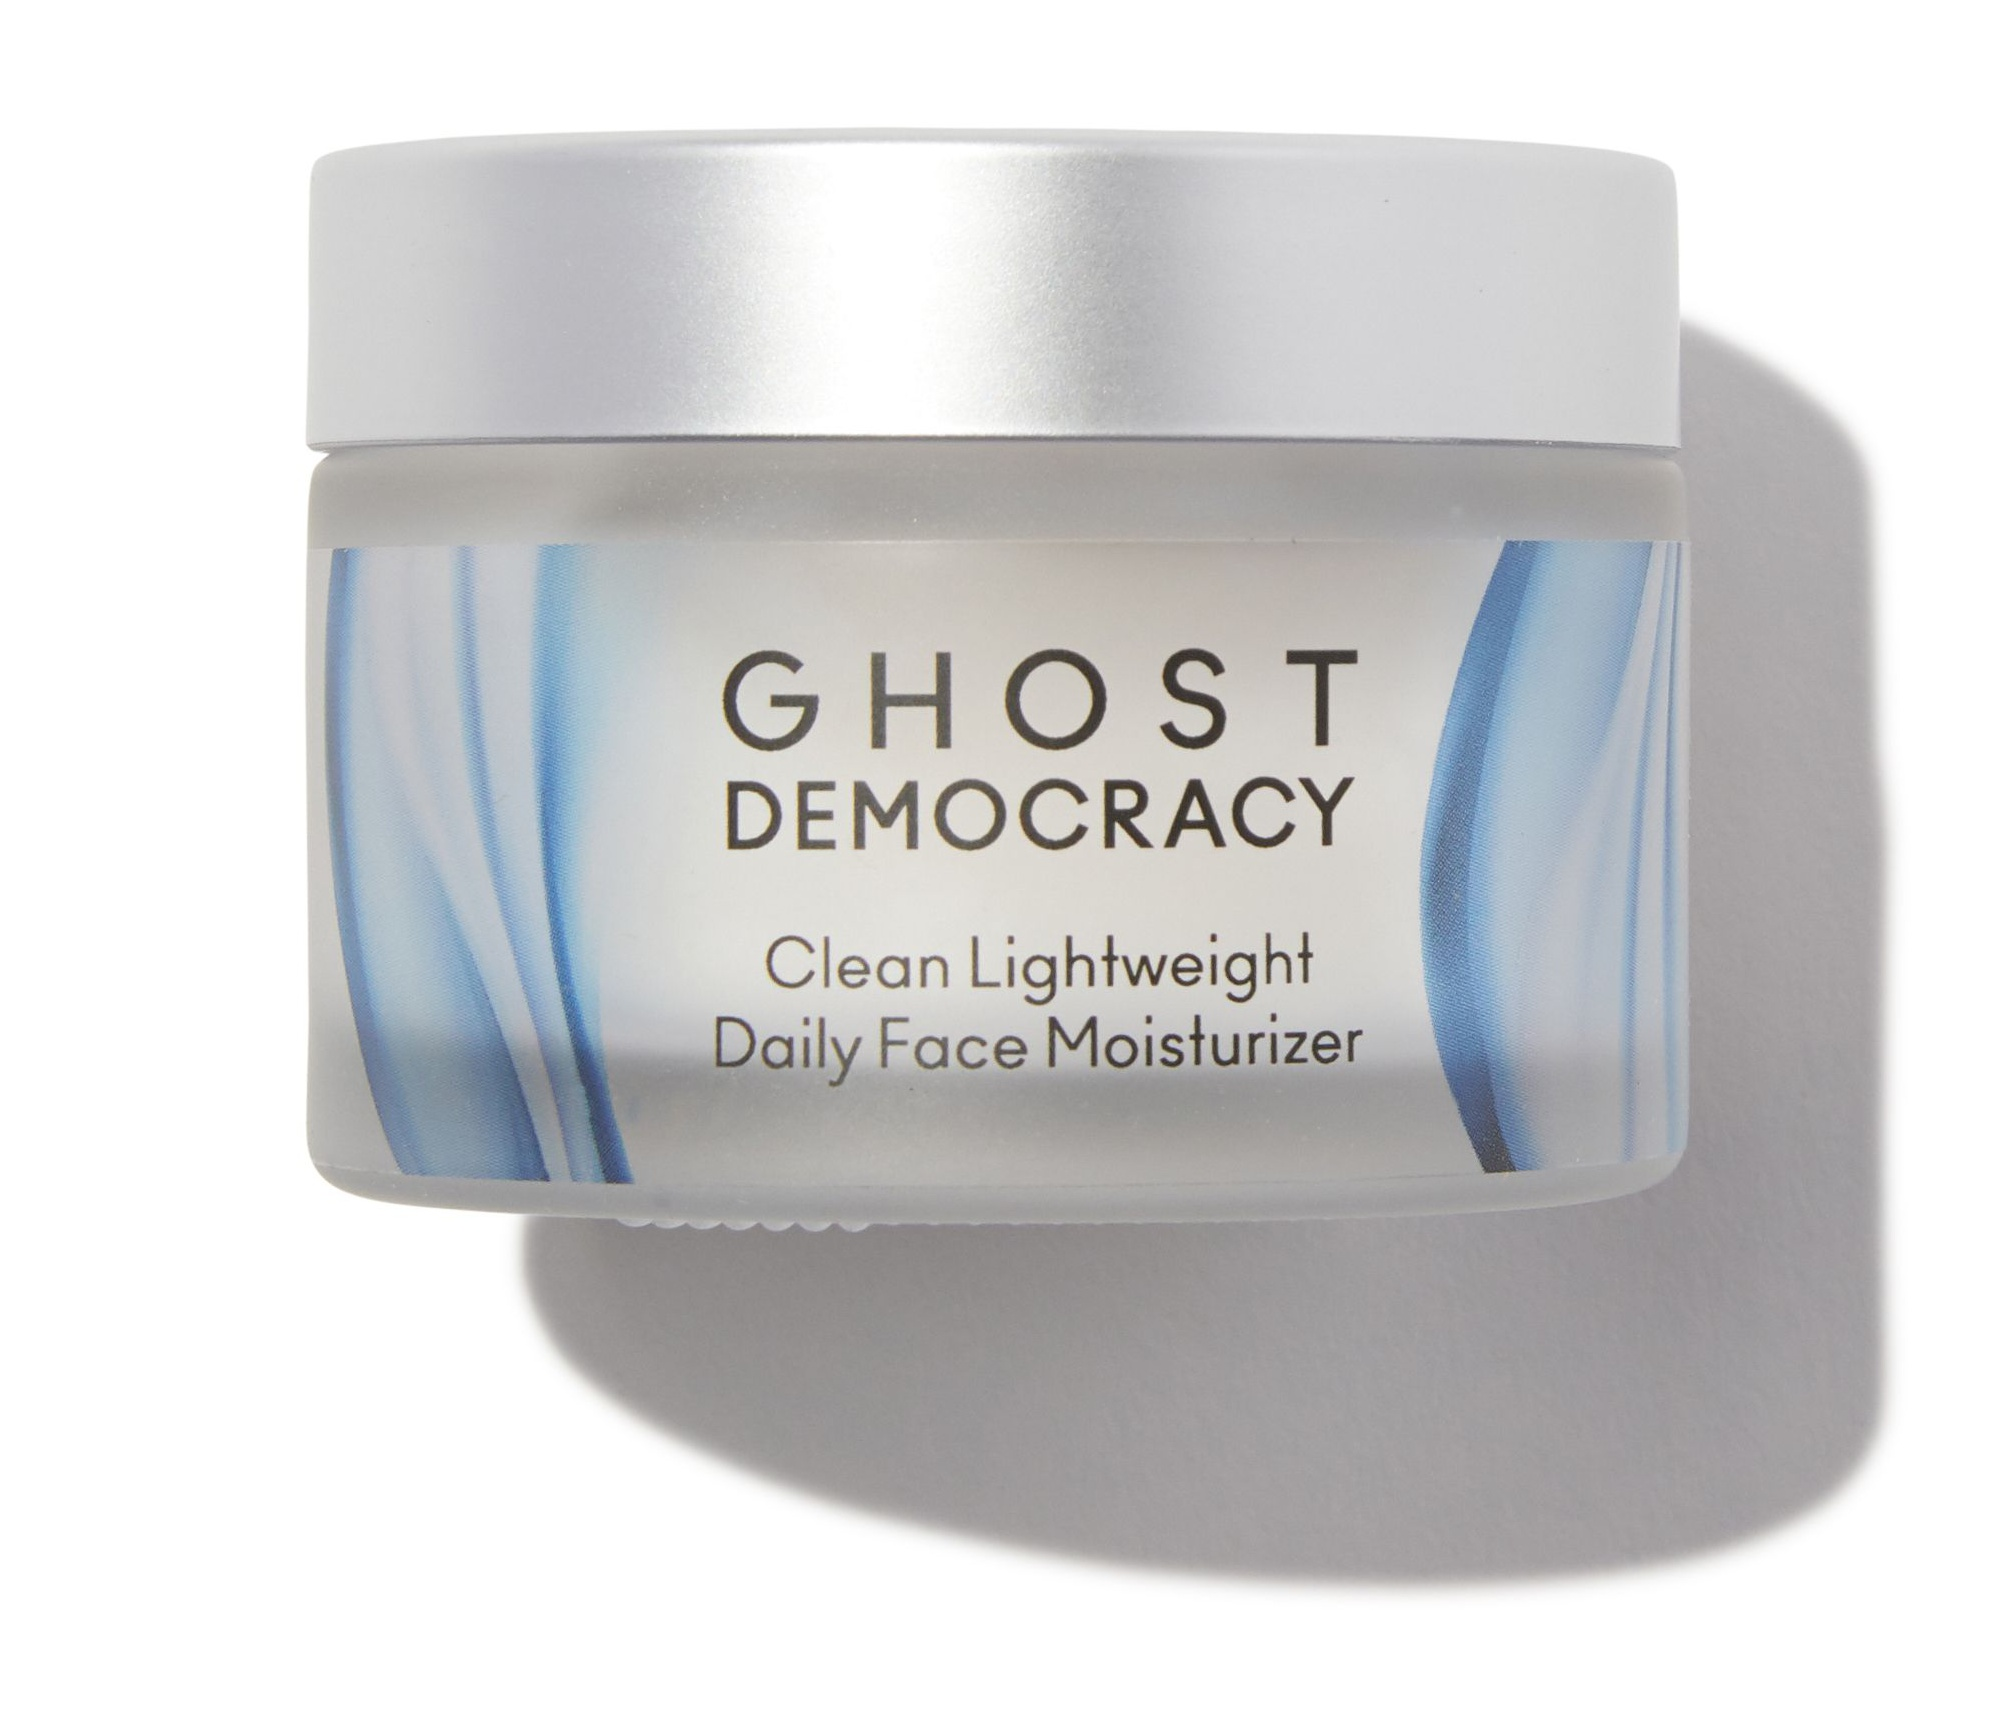 Ghost Democracy Lightweight Daily Face Moisturizer